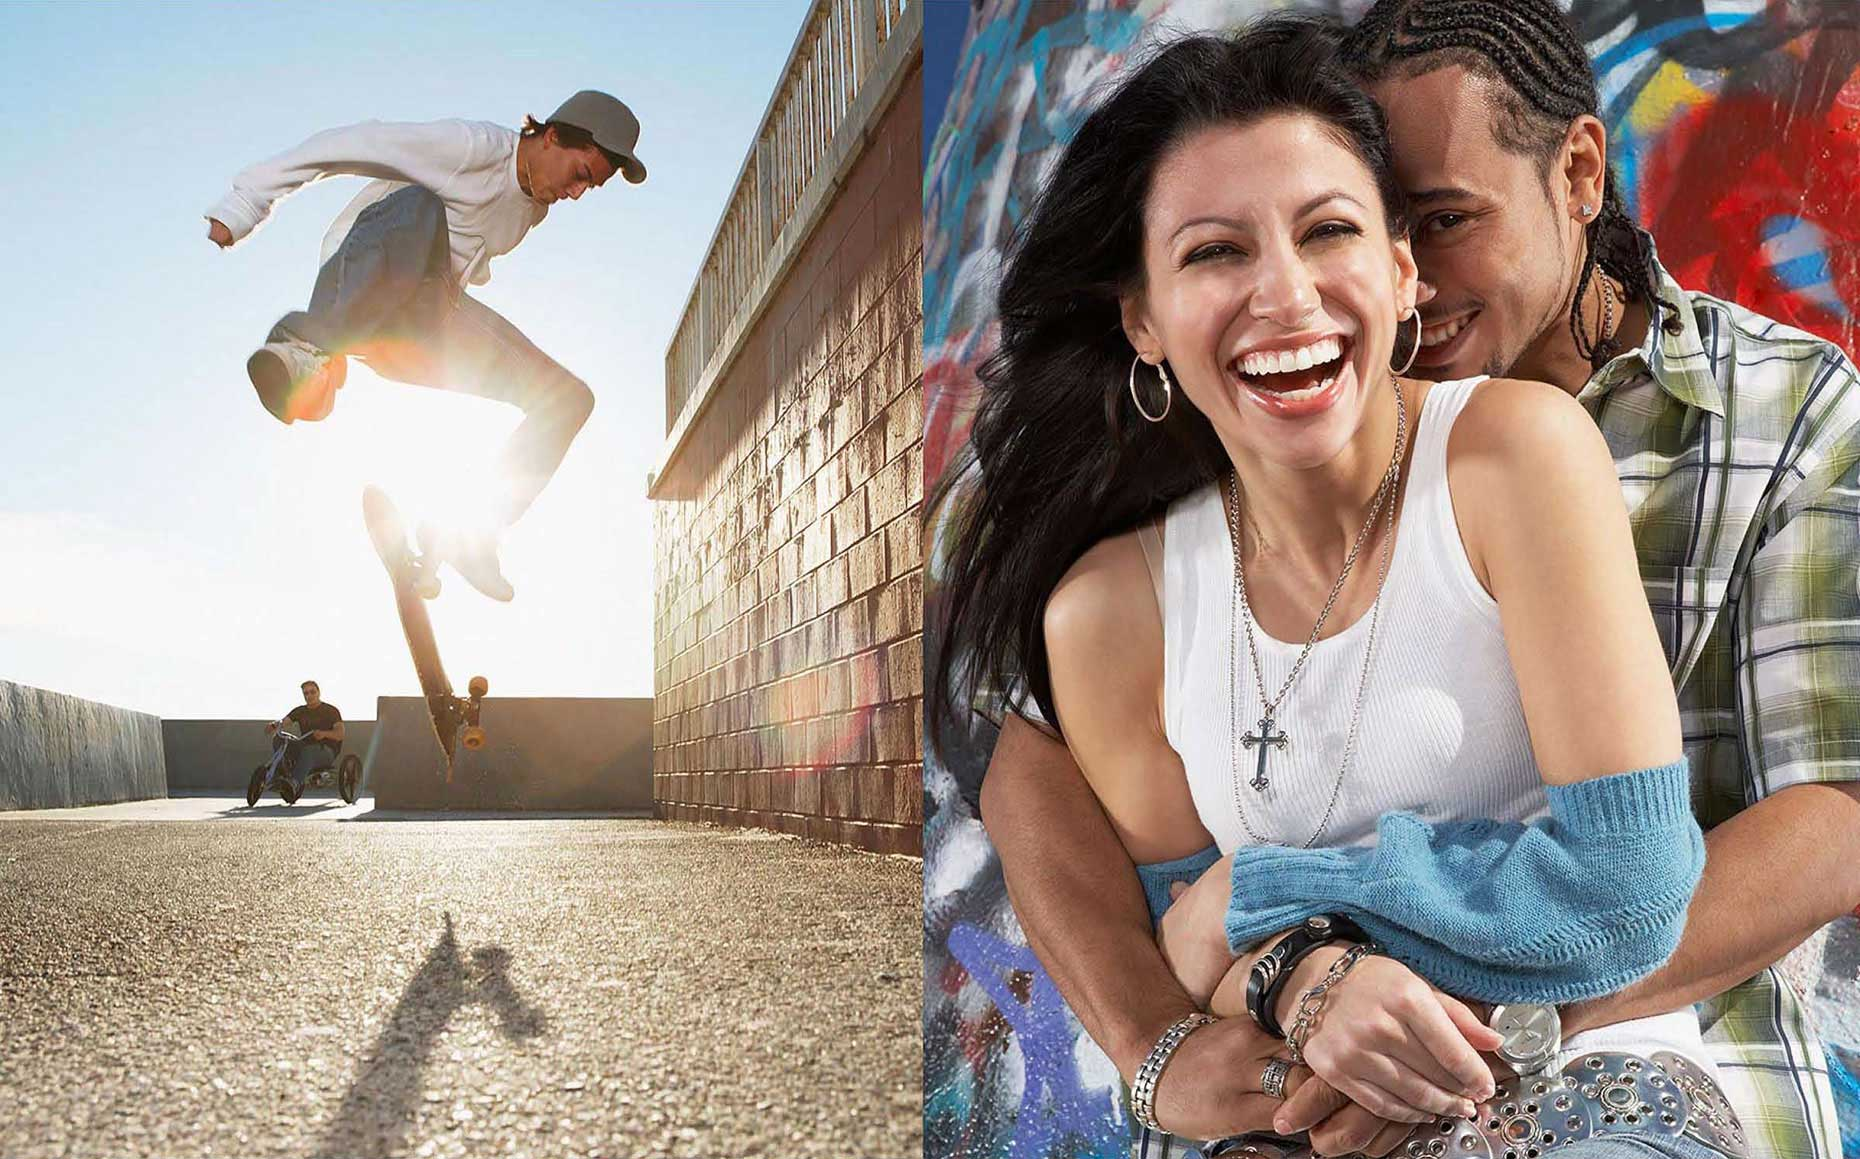 Photography_Lifestyle_Skater Couple-Tony Garcia